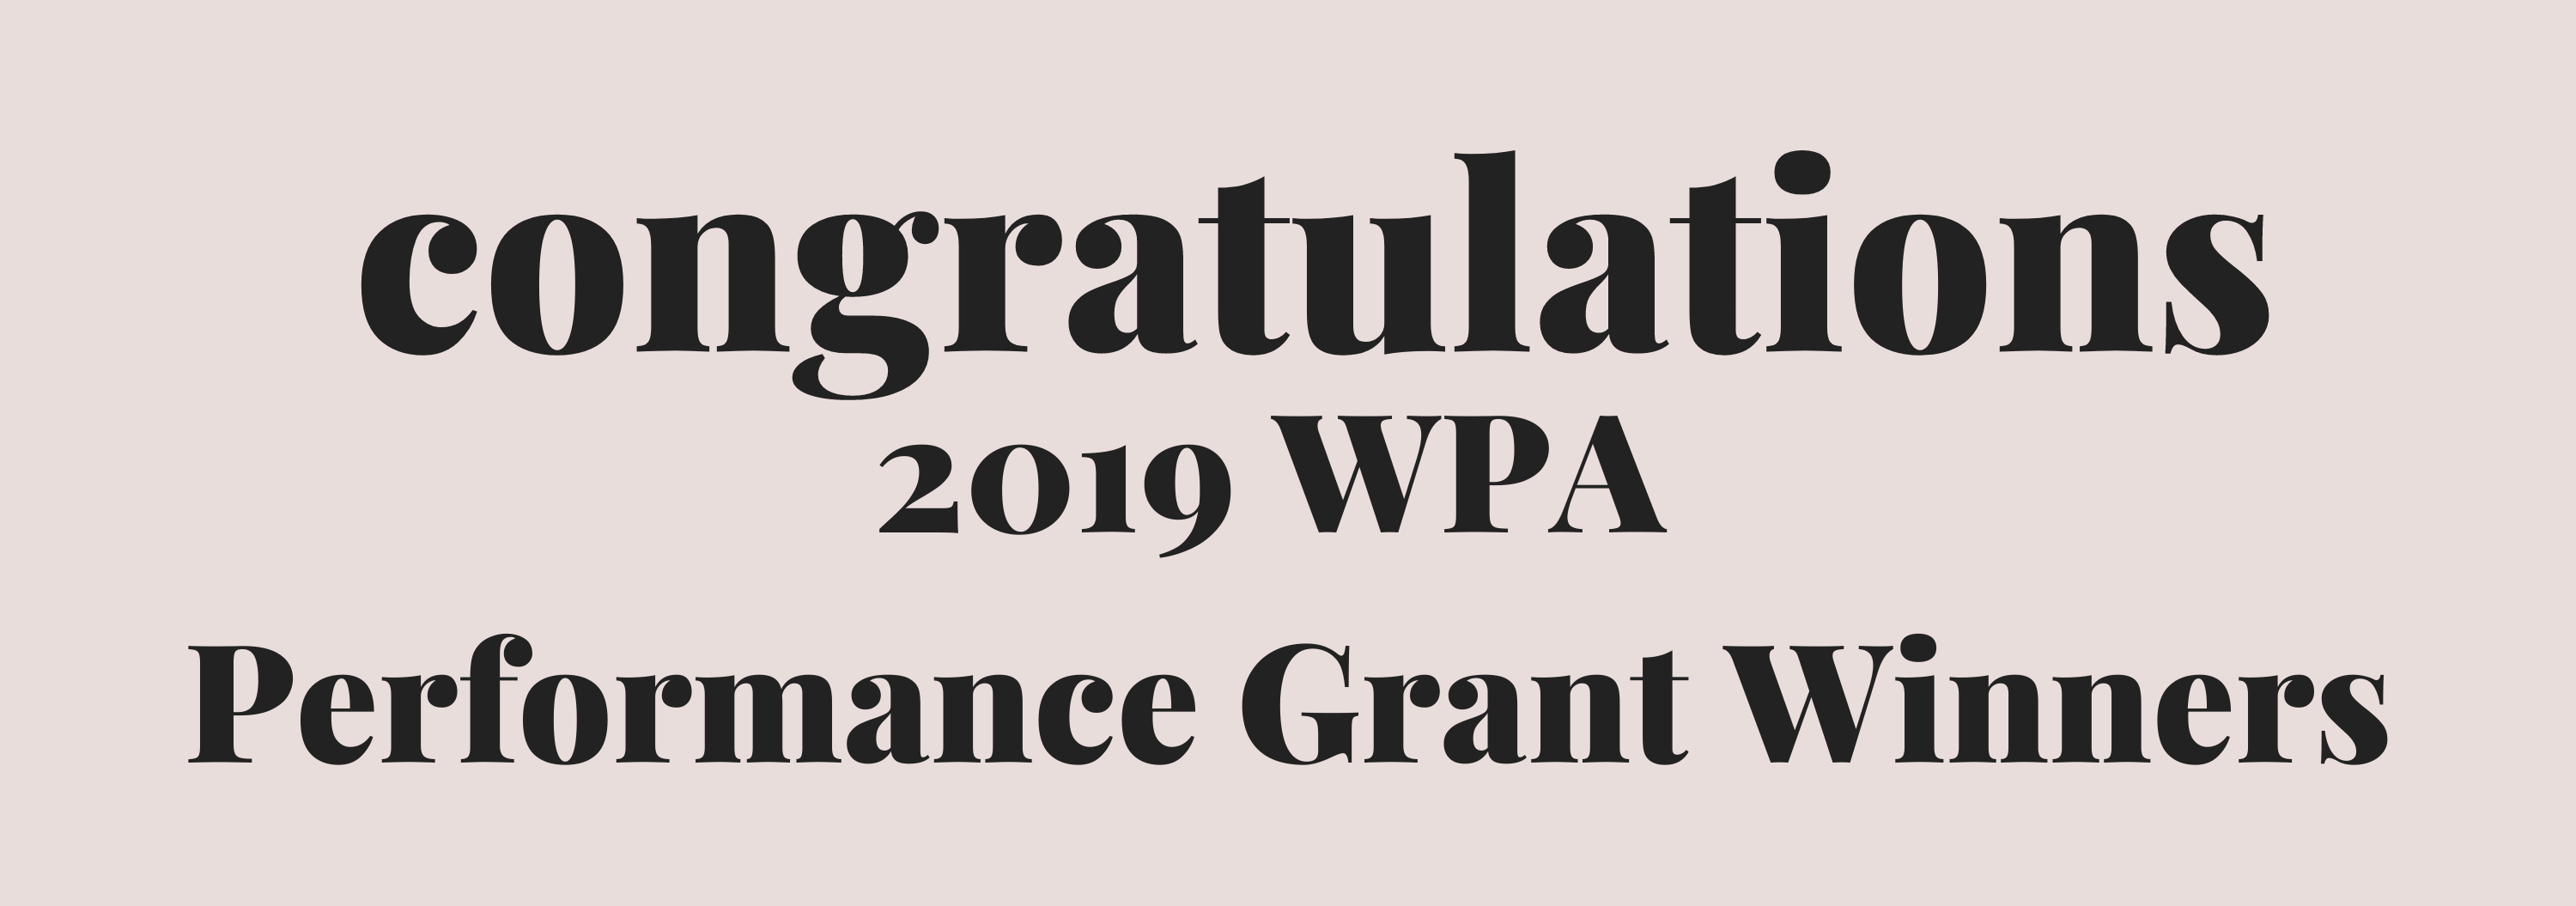 Congratulations to the 2019 WPA Grant Winners!